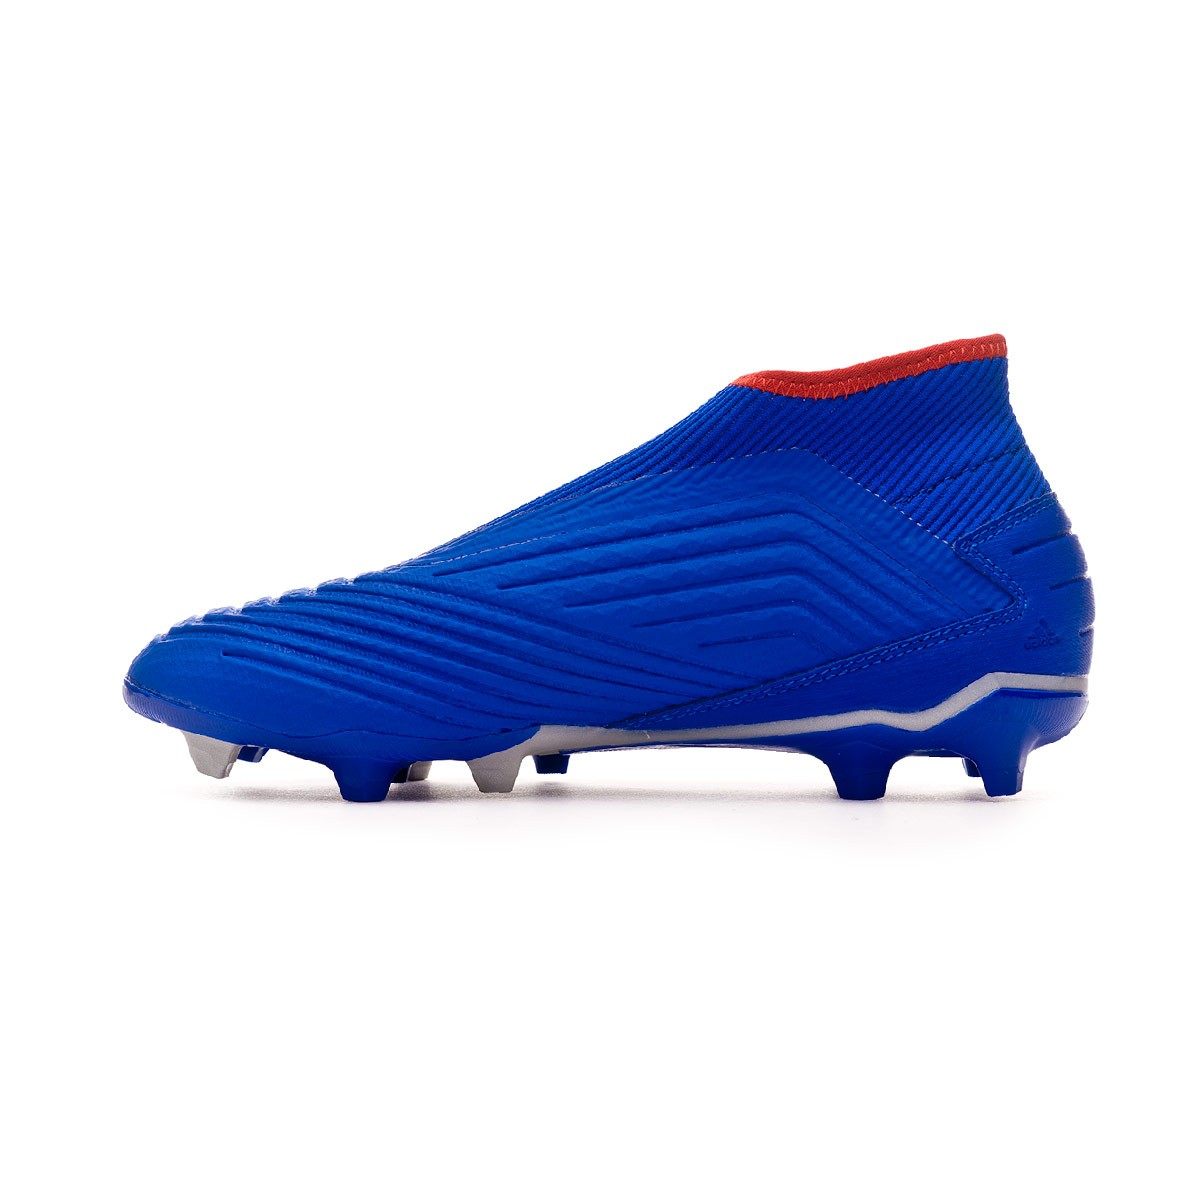 b87dffbe017efe Football Boots adidas Predator 19.3 FG LaceLess Bold blue-Active red-Silver  metallic - Football store Fútbol Emotion